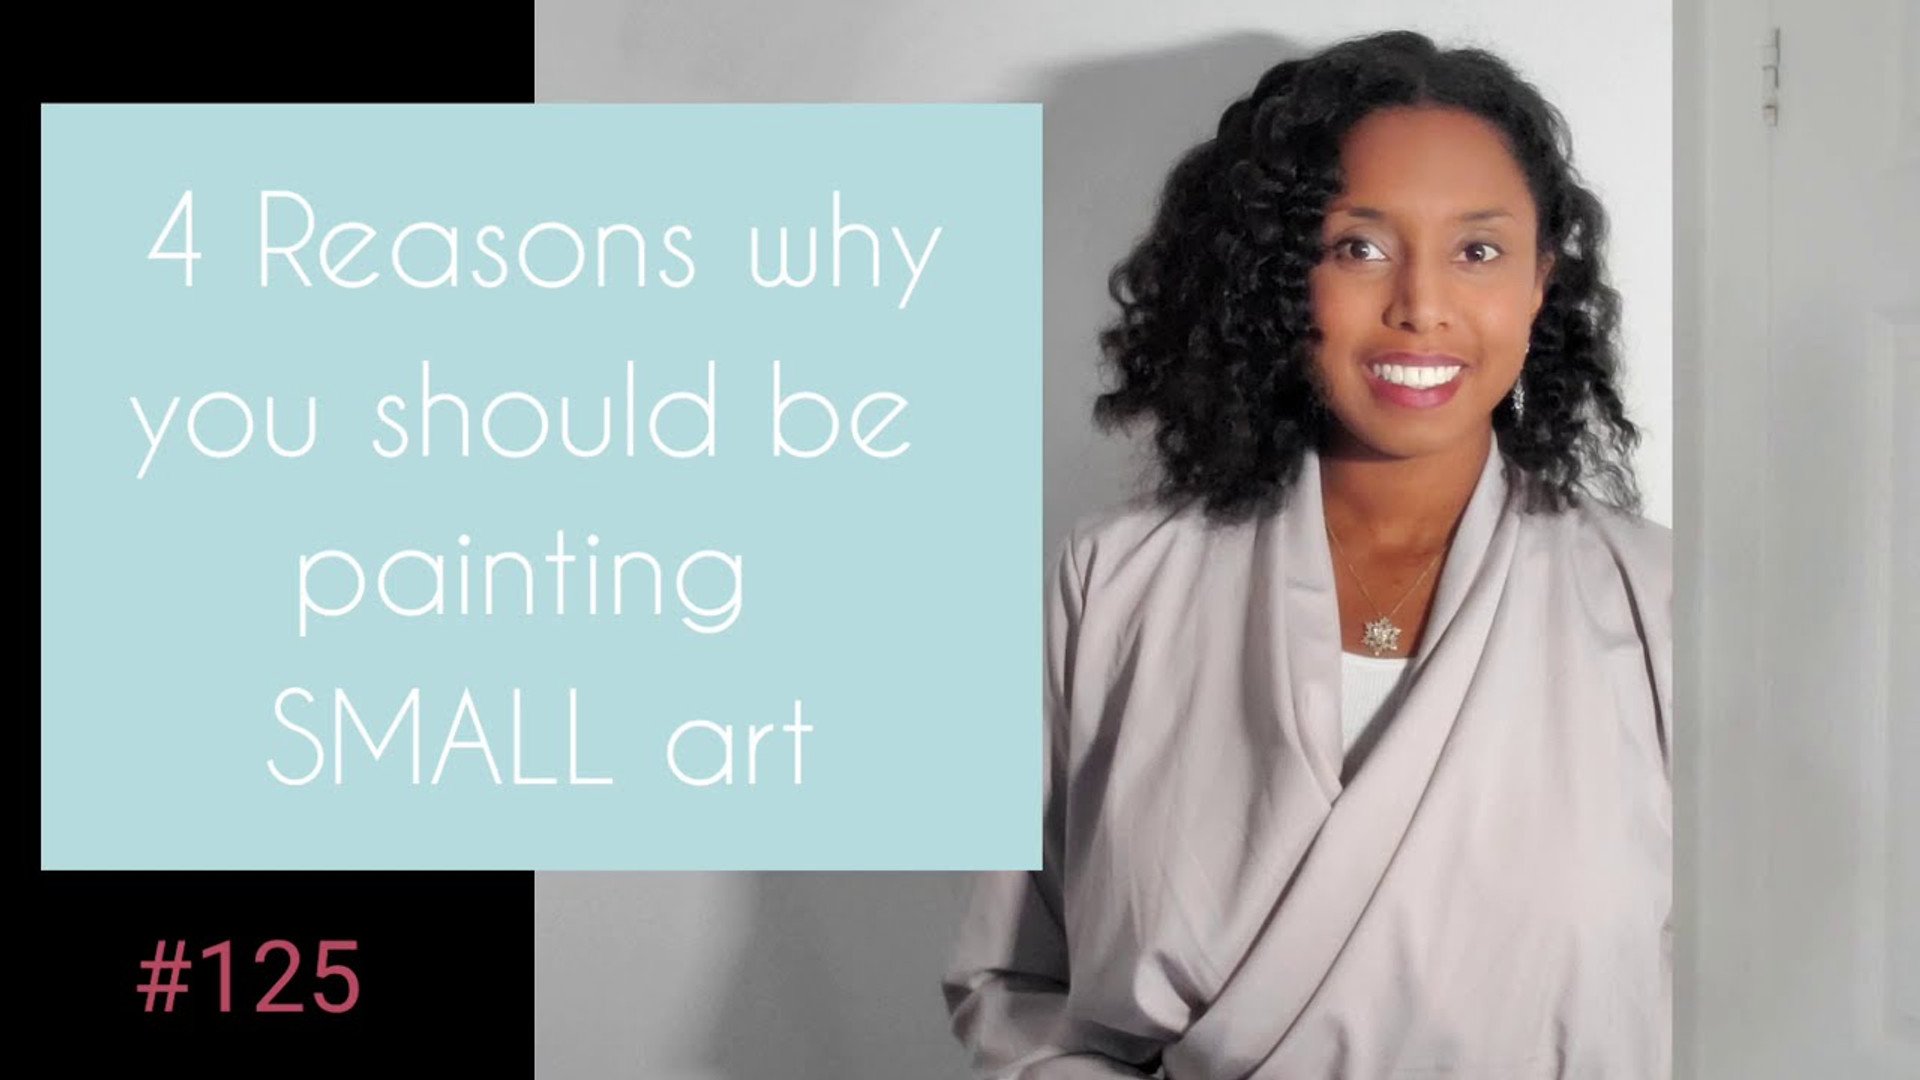 4 Reasons Why You Should Paint Small Art